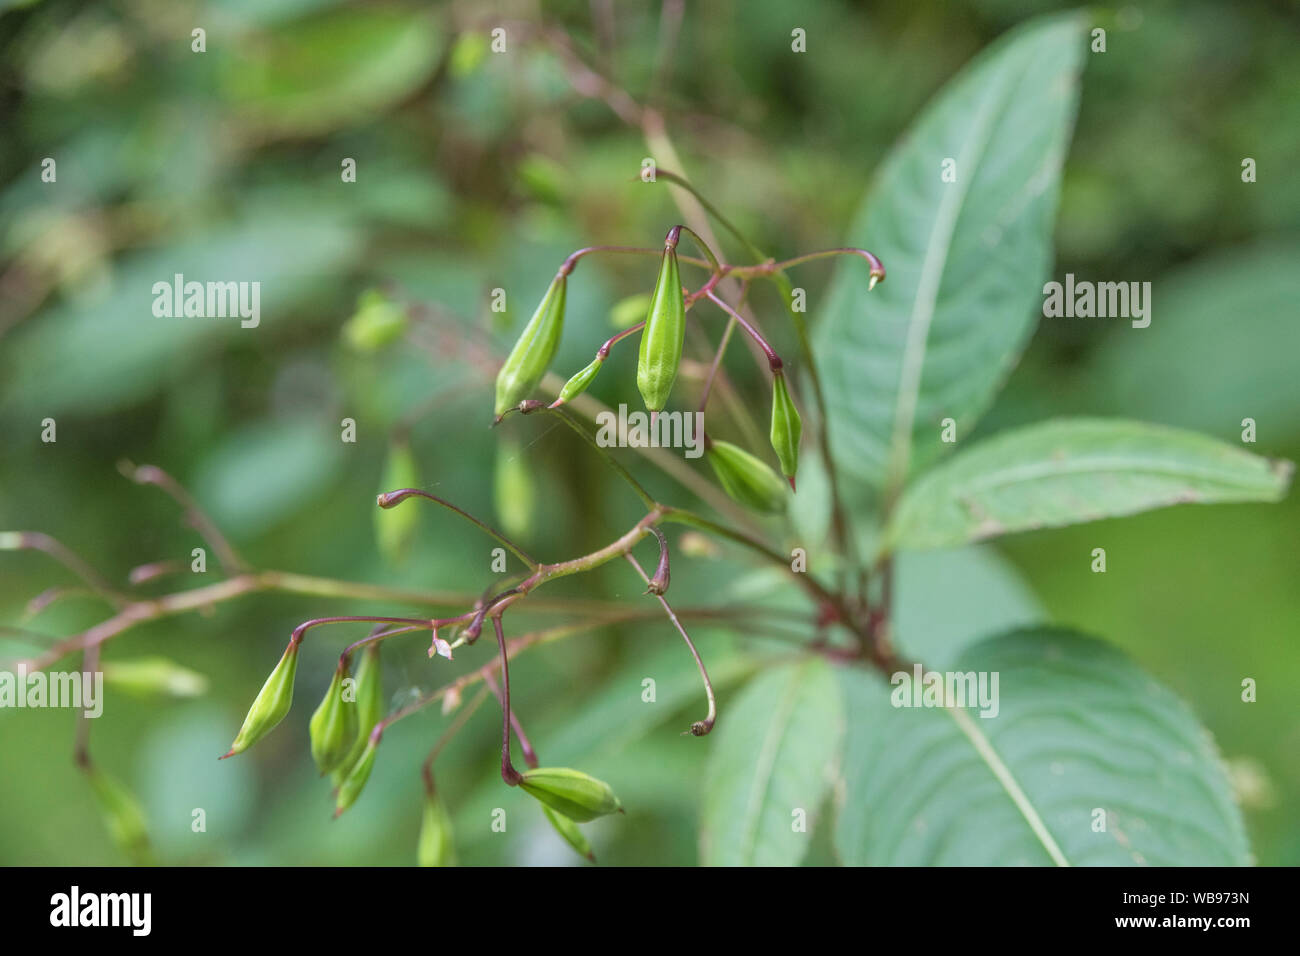 Developing seed pods & upper leaves of troublesome Himalayan Balsam / Impatiens glandulifera which likes damp soils / ground, riversides, river banks. Stock Photo